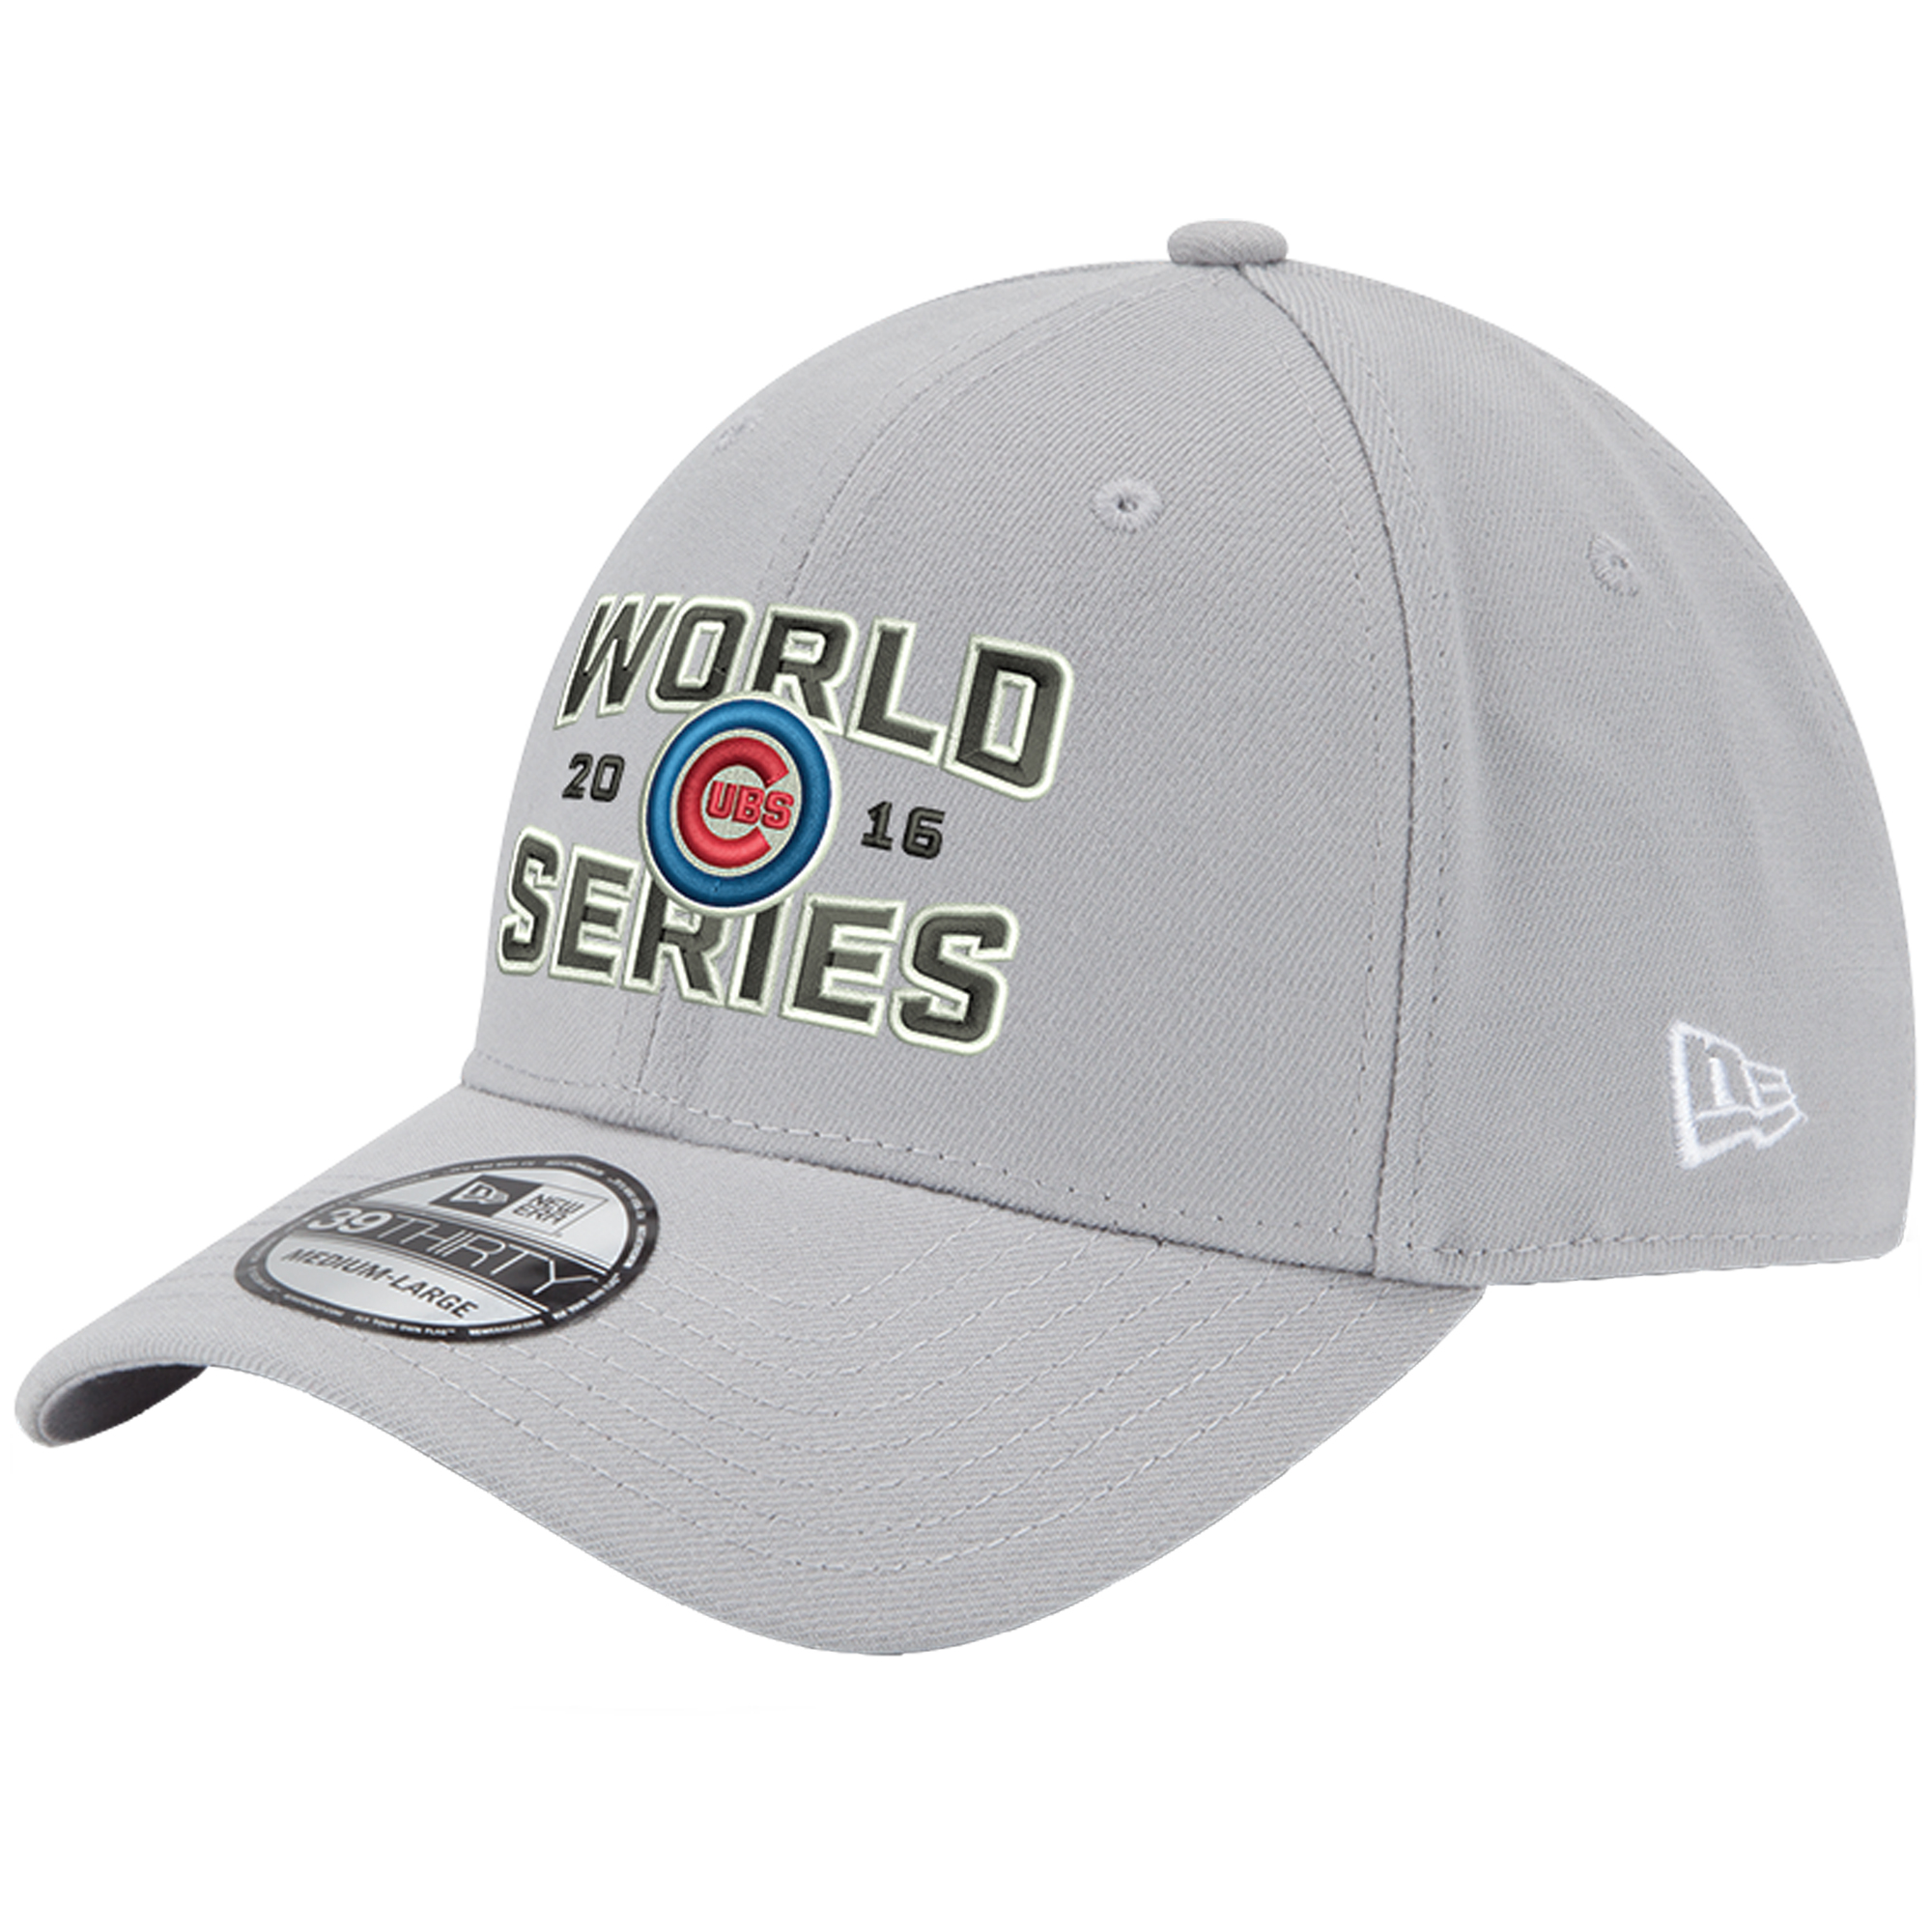 Chicago Cubs New Era 2016 World Series Champions 39THIRTY Flex Hat - Gray